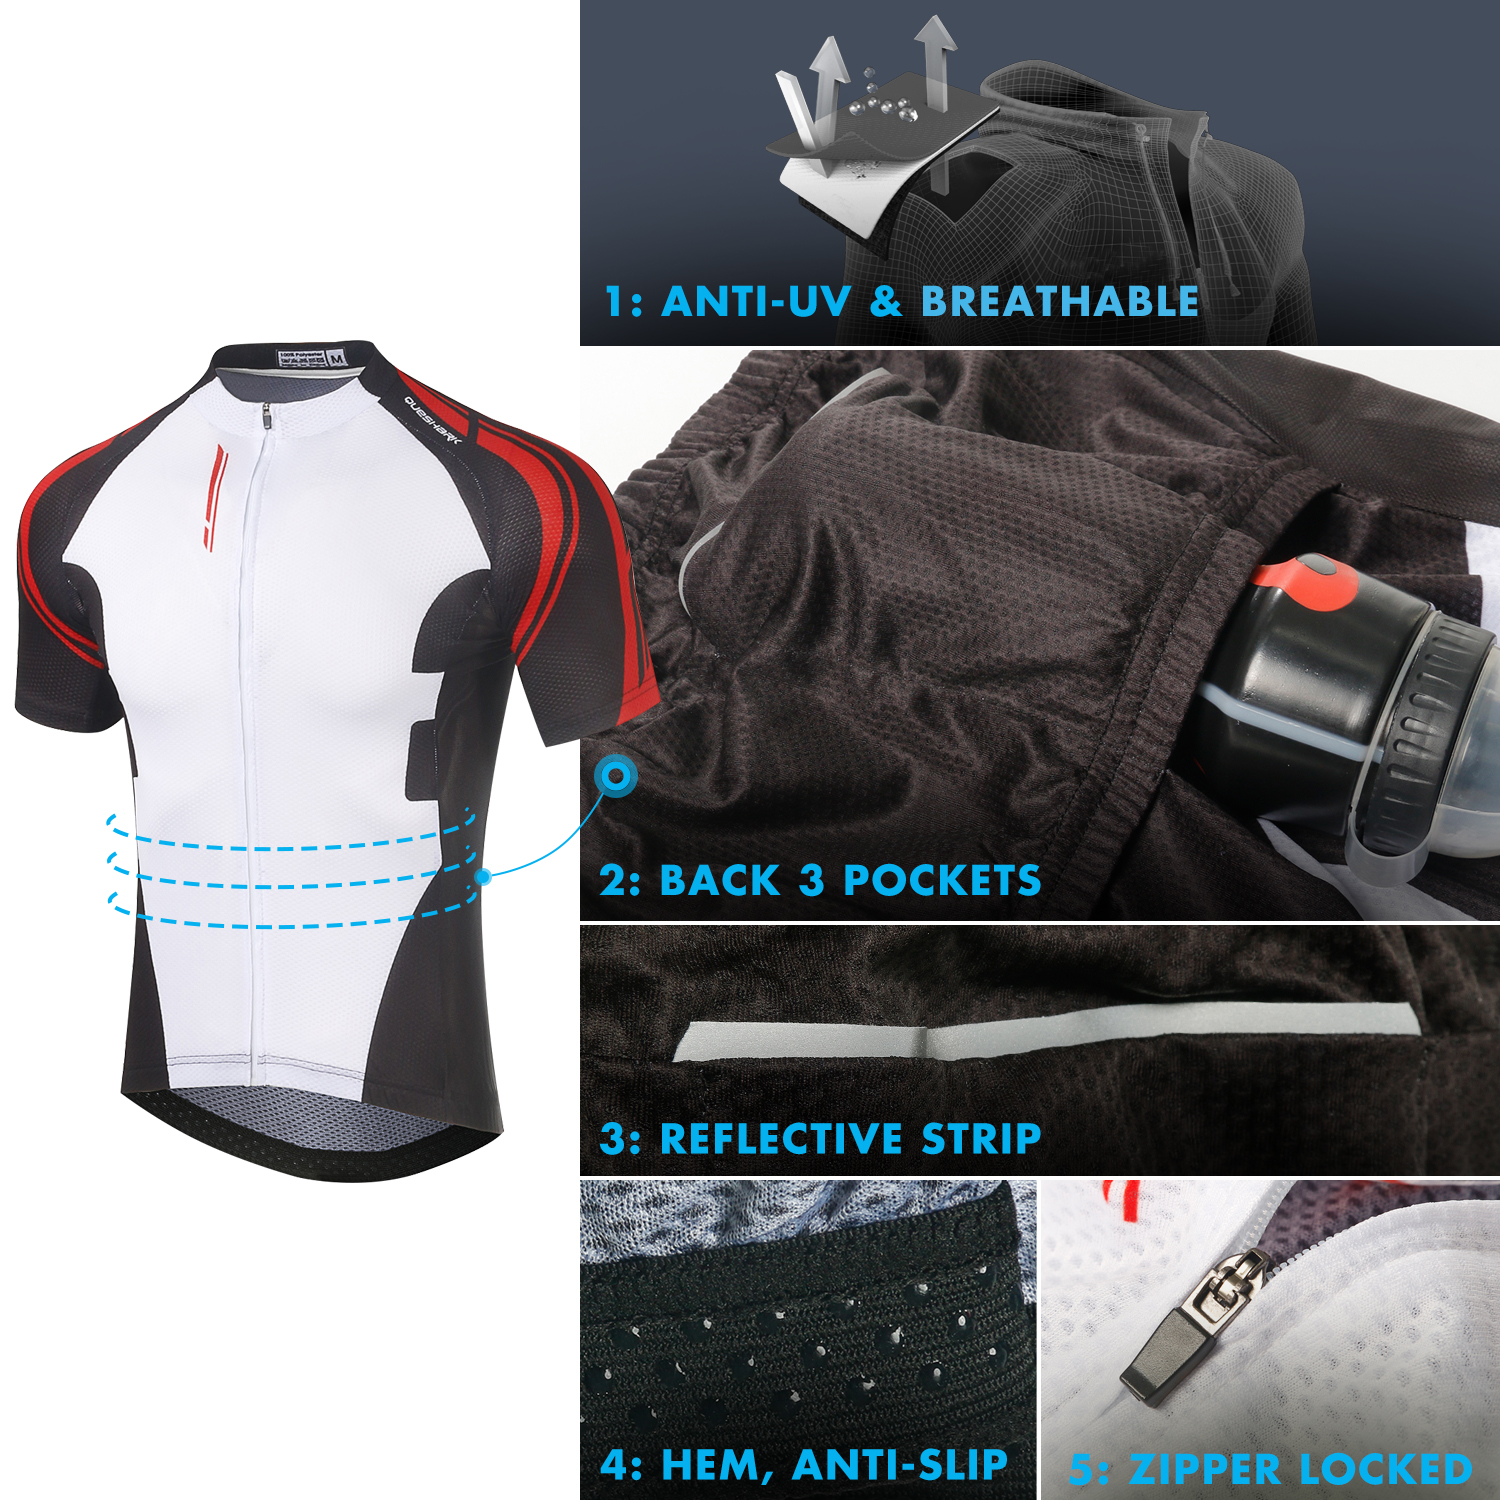 Queshark Summer Cycling Jersey Breathale Mountain Bike Clothing Quick-Dry Racing MTB Bicycle Clothes Uniform Cycling Suit Set 3